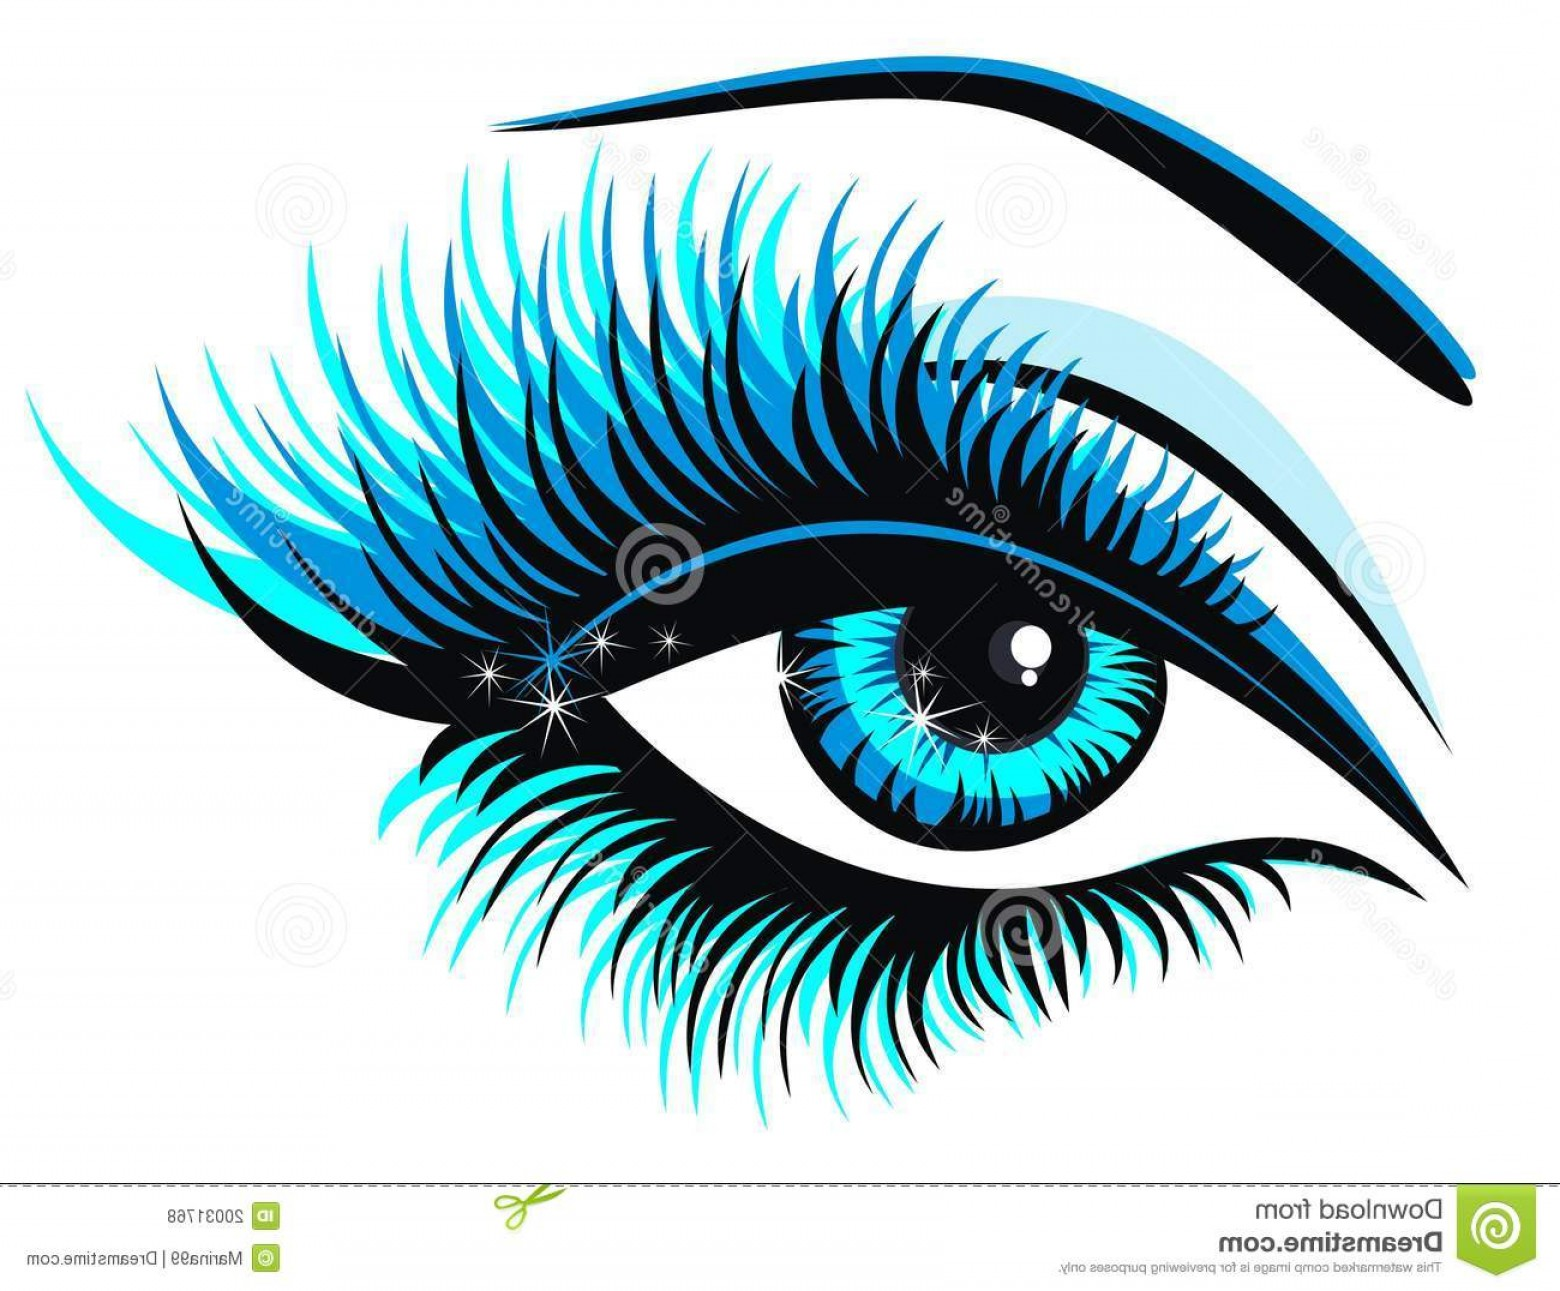 Green Cartoon Eyes Vector Png: Royalty Free Stock Photography Green Eye Vector Illustration Image